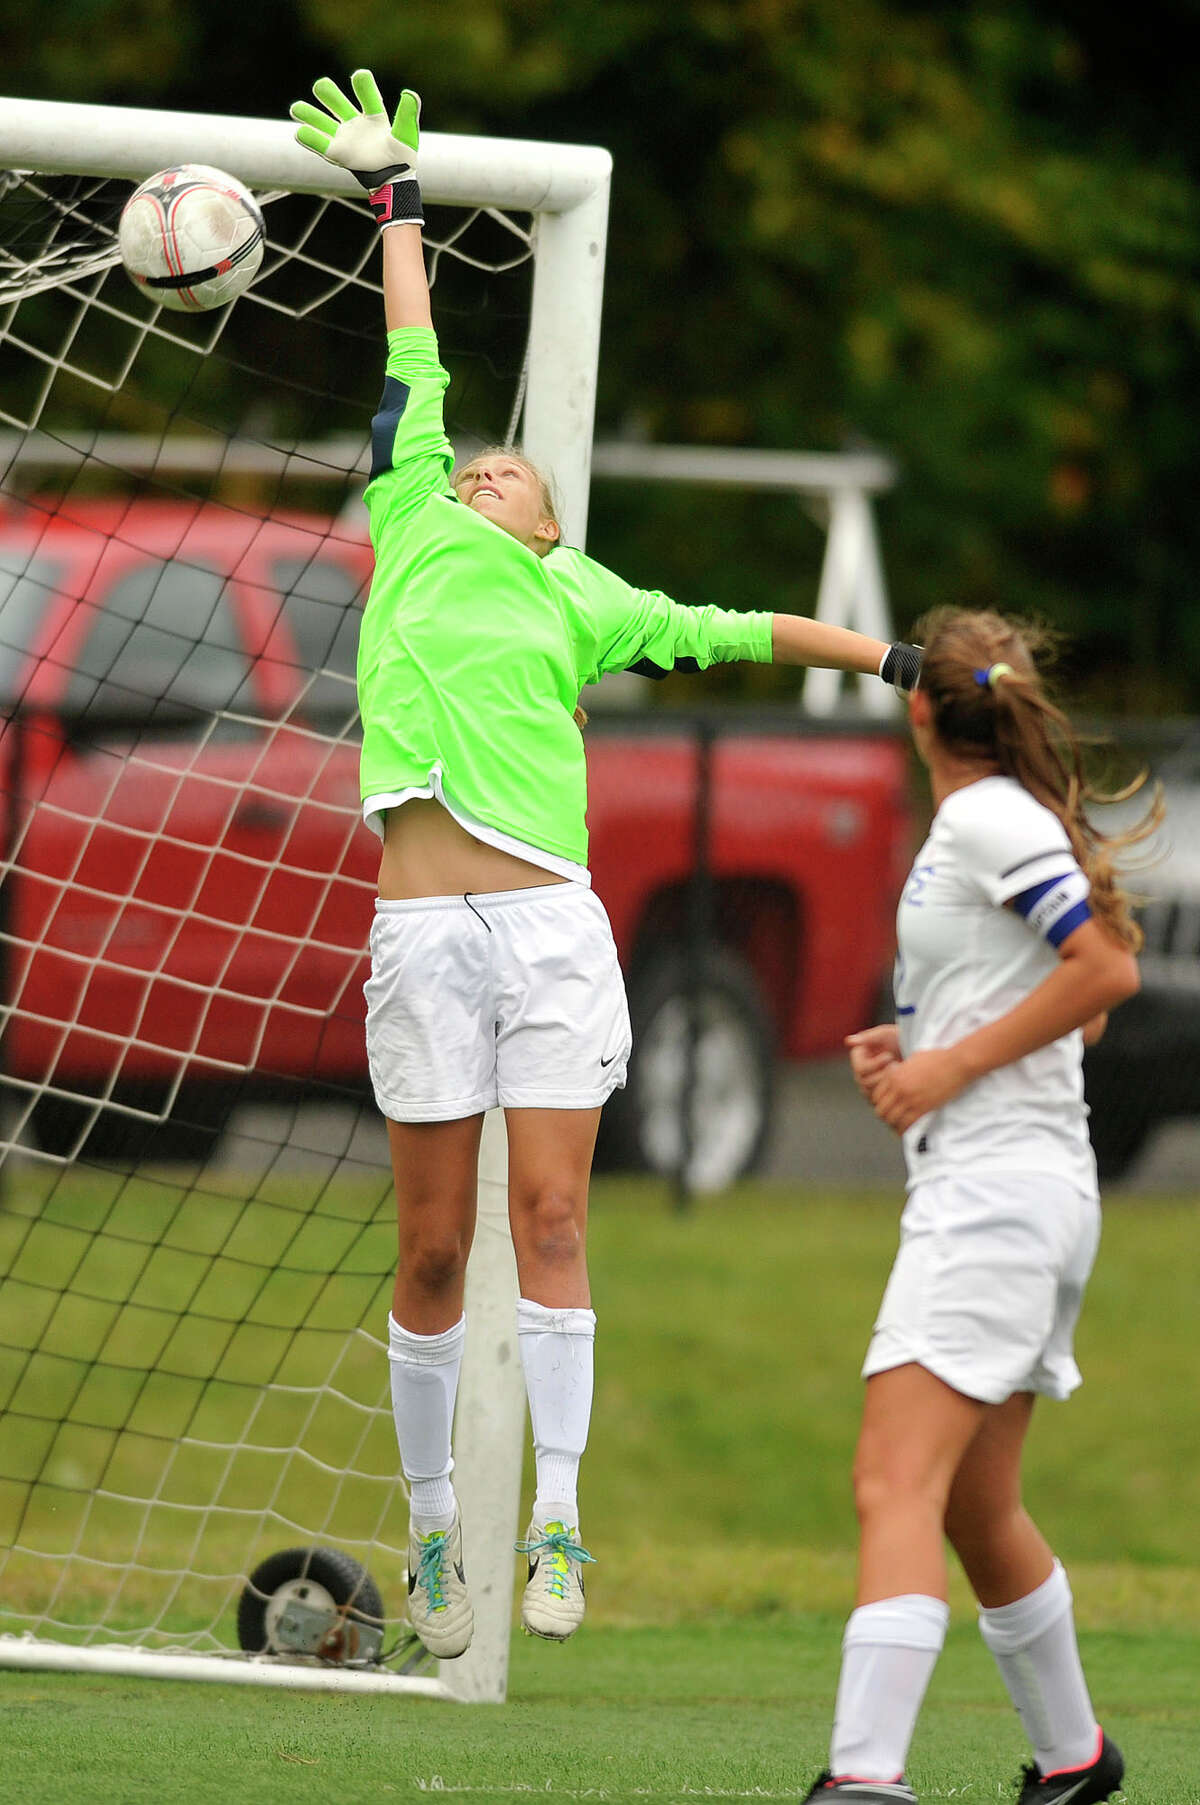 Darien goalie Kate Fiore leaps unsuccessfully for the ball from the free kick off of Westhill's Jessica Laszlo during their soccer game at Darien High School in Darien, Conn., on Wednesday, Oct. 1, 2014. Westhill won, 3-1.